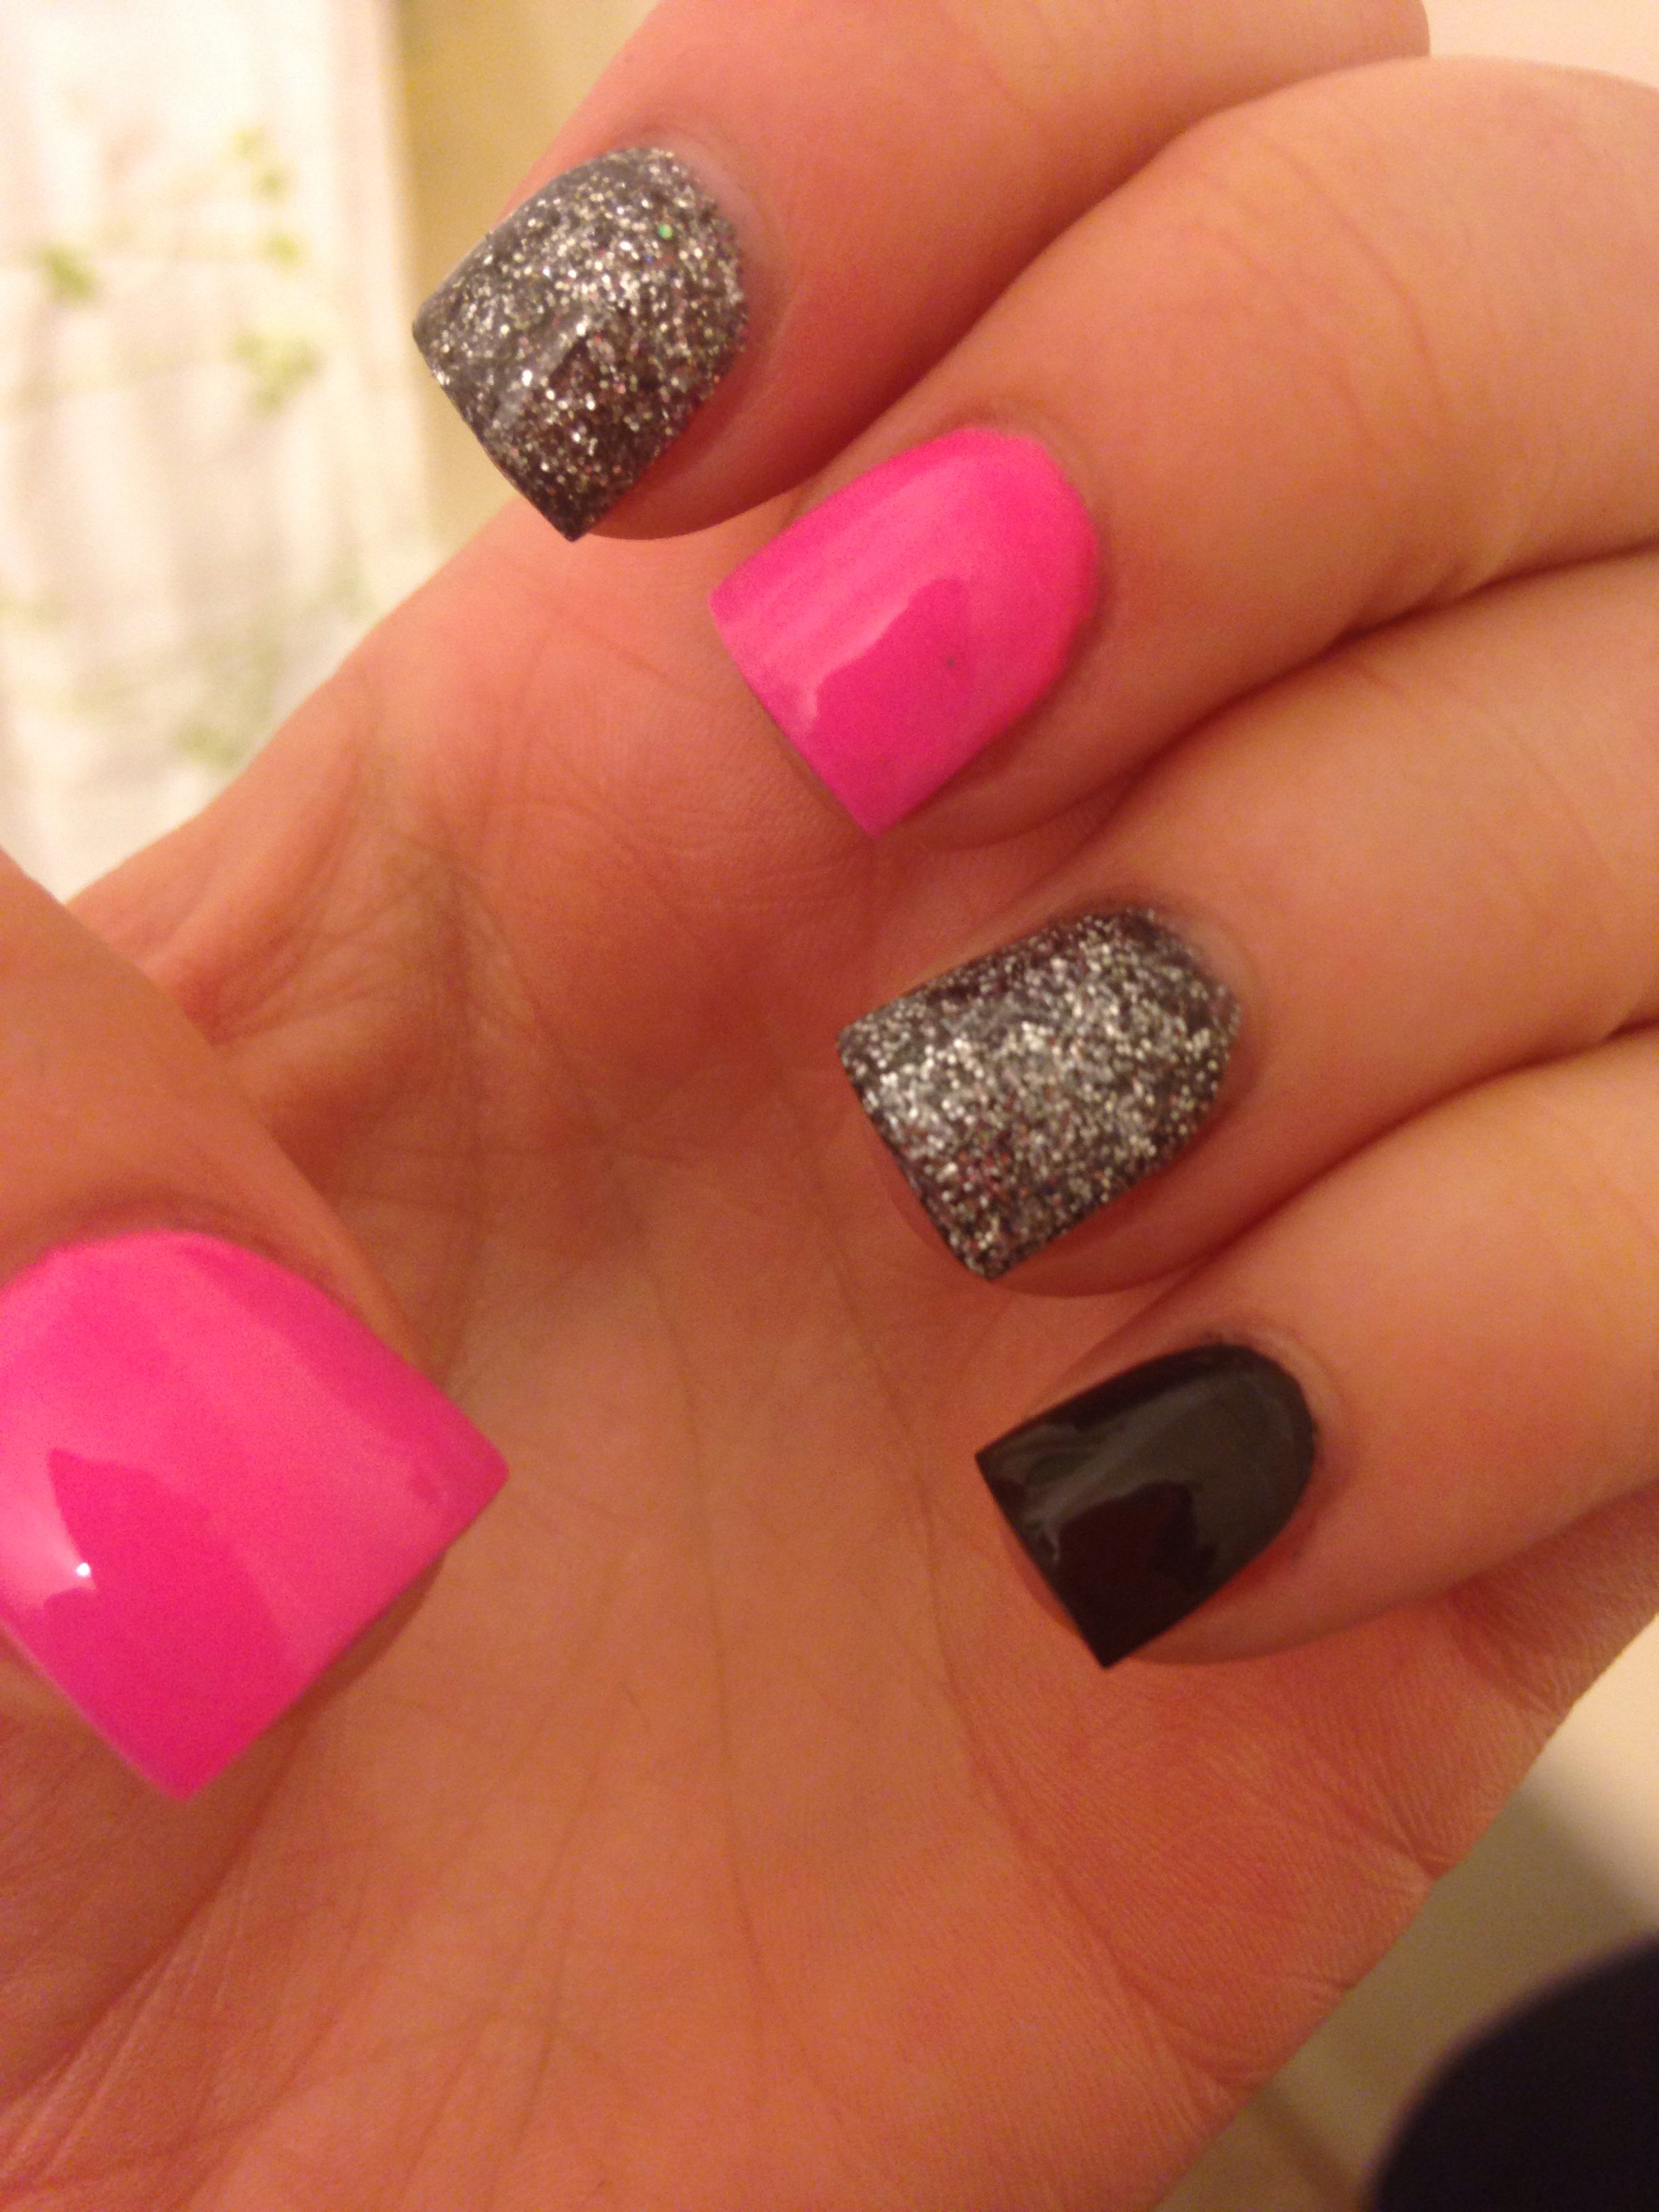 Pink and black nails | Nails and Hair | Pinterest | Black nails ...